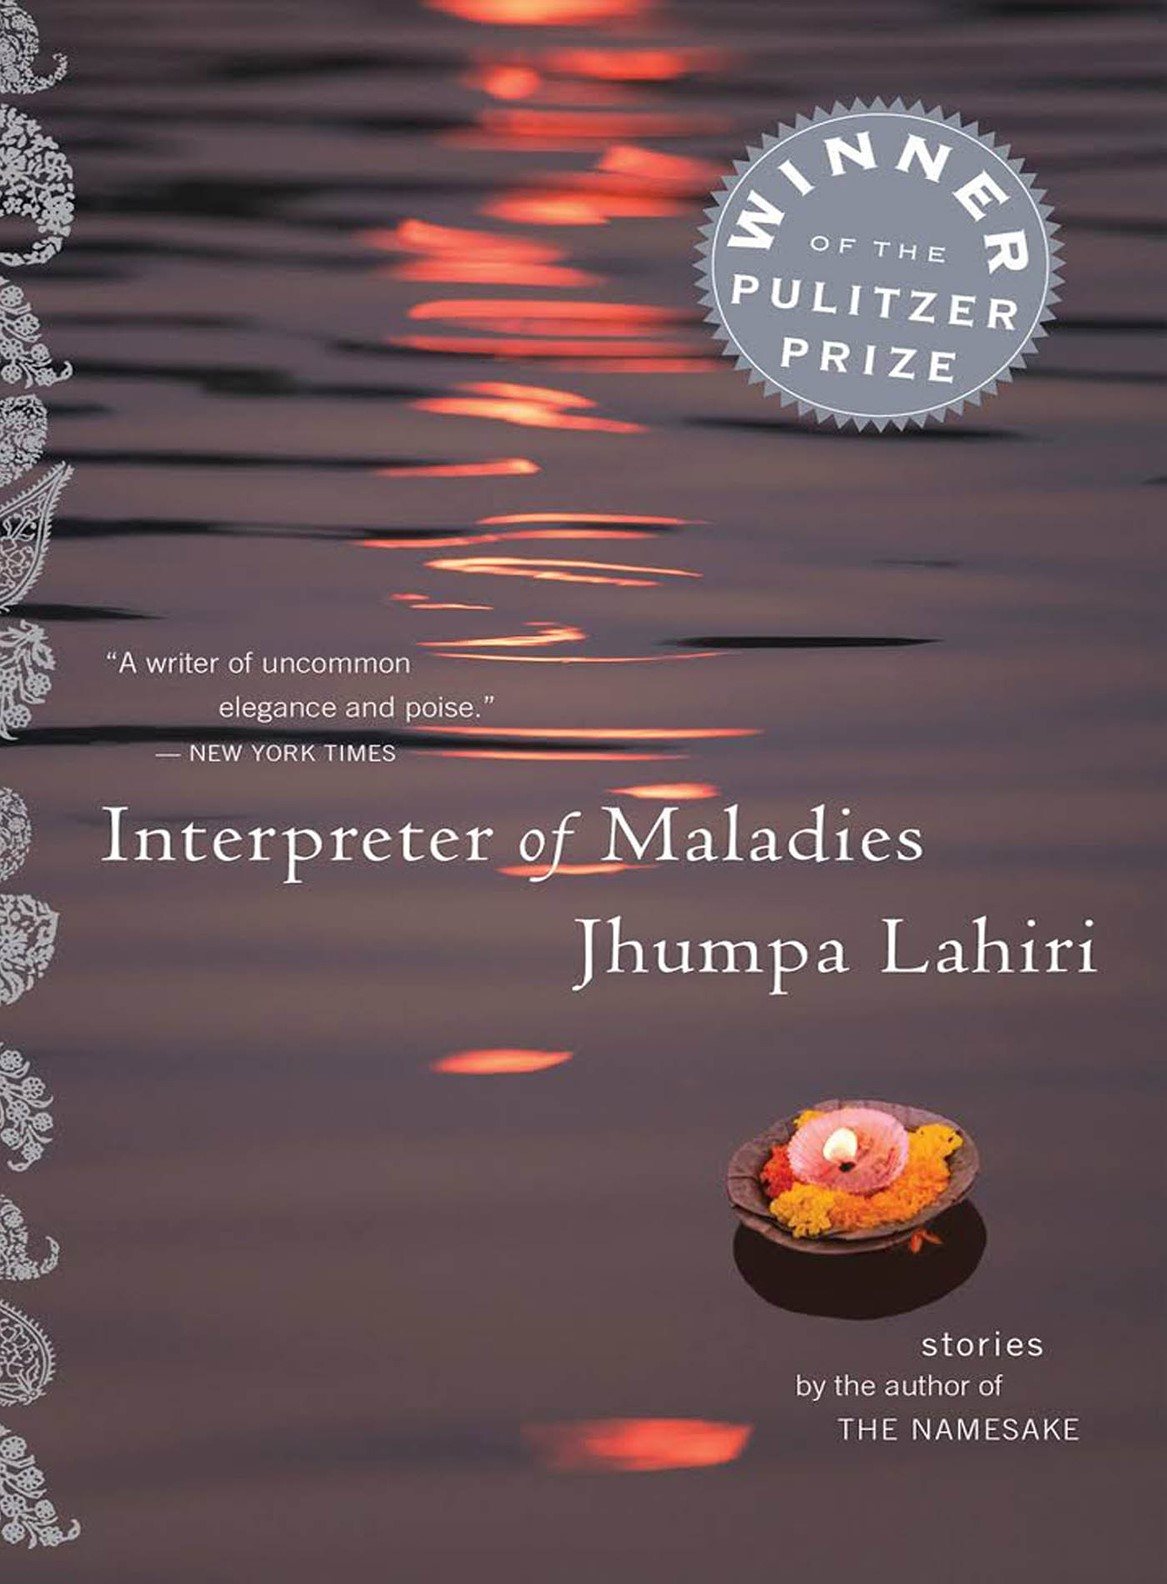 Interpreter of Maladies - Jhumpa Lahiri / MFAH Book Club cover